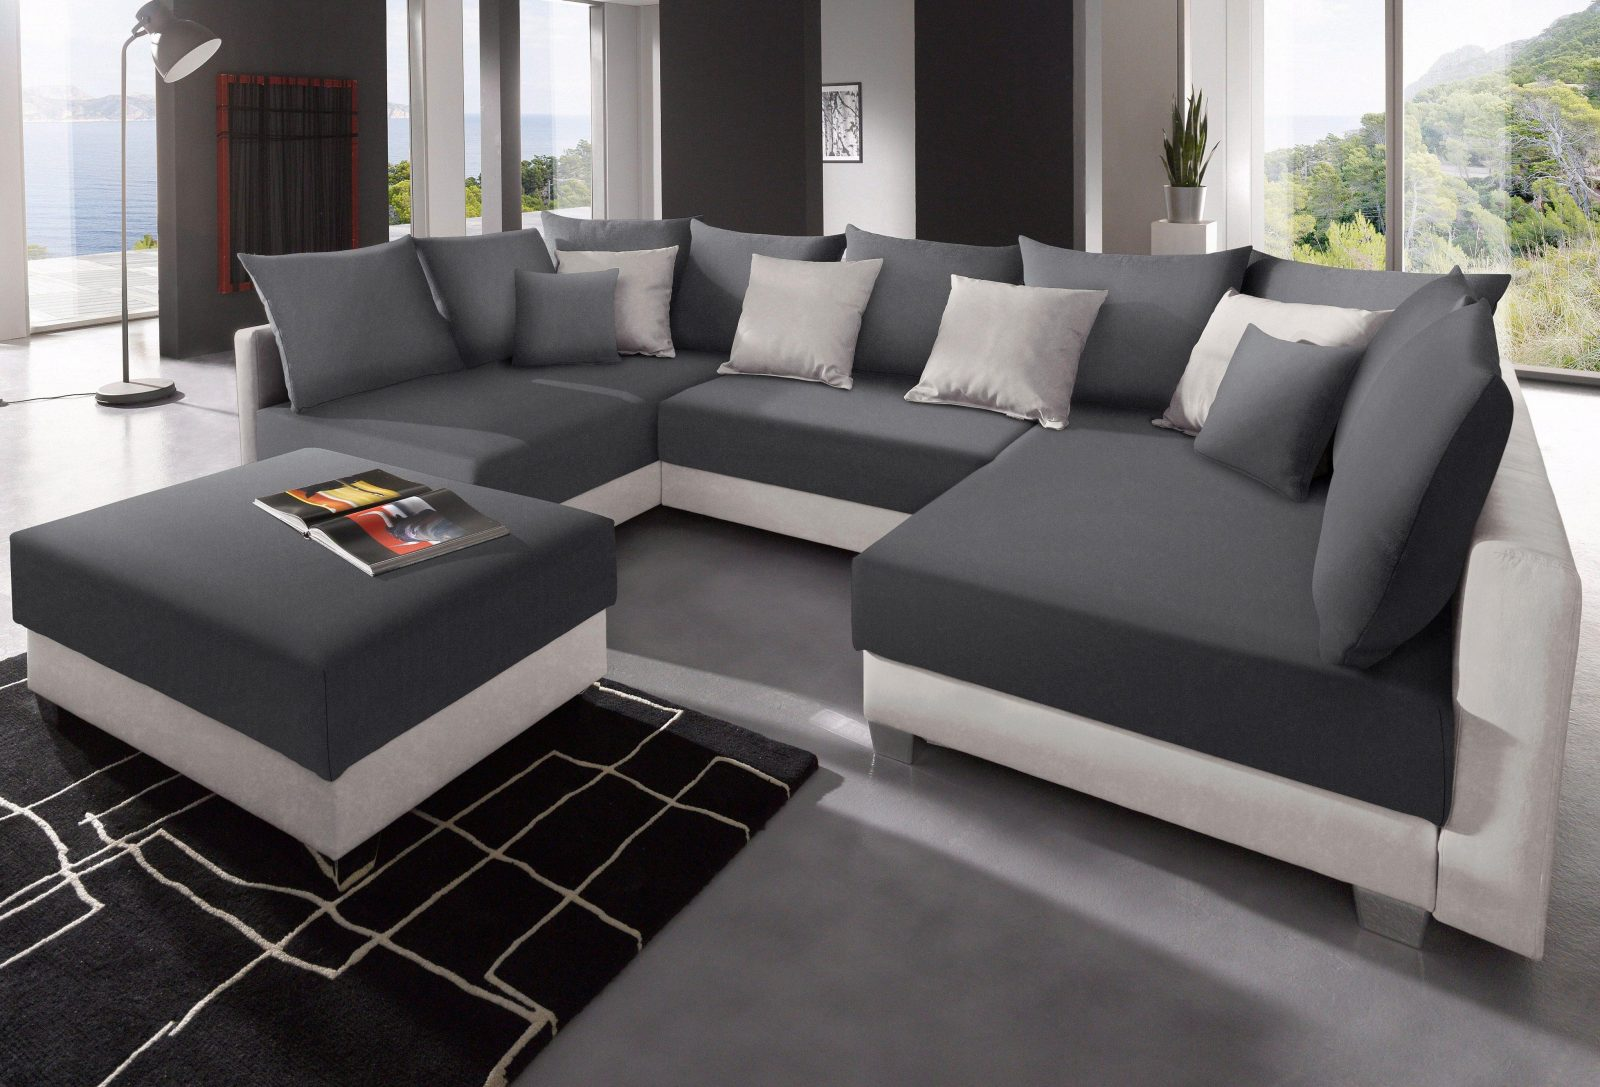 Wohnlandschaft U Form Xxl Couch A Download Image L Gunstig von Wohnlandschaft Xxl U Form Photo